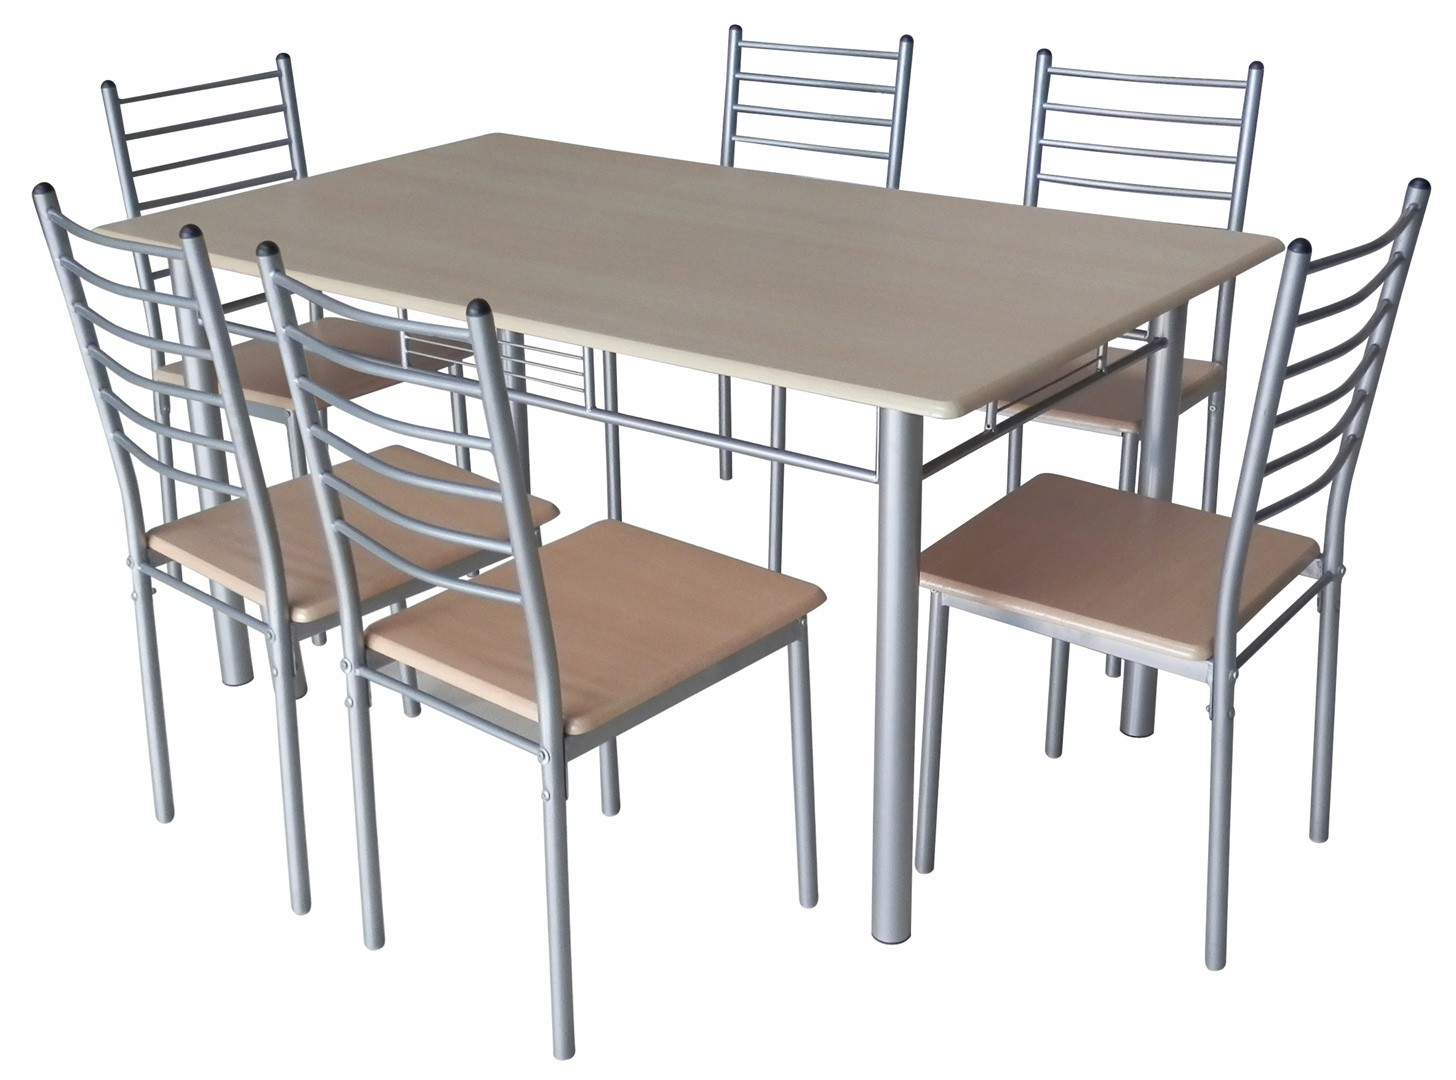 Ensemble table et chaises de cuisine but chaise id es for Table et chaise blanche